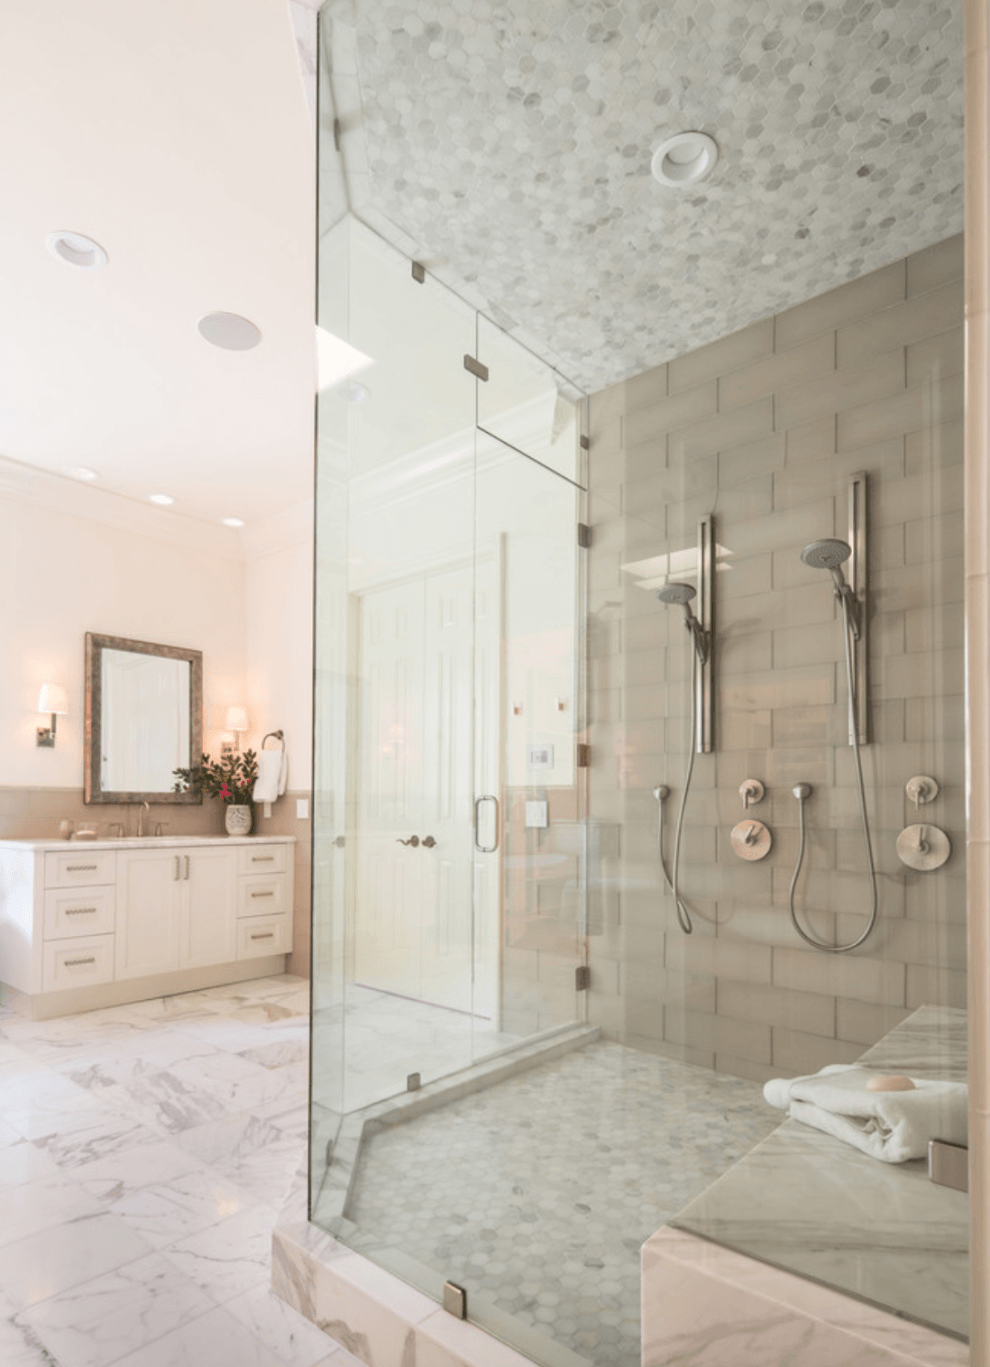 Mix of white and beige tiles in this traditional/transitional master bathroom